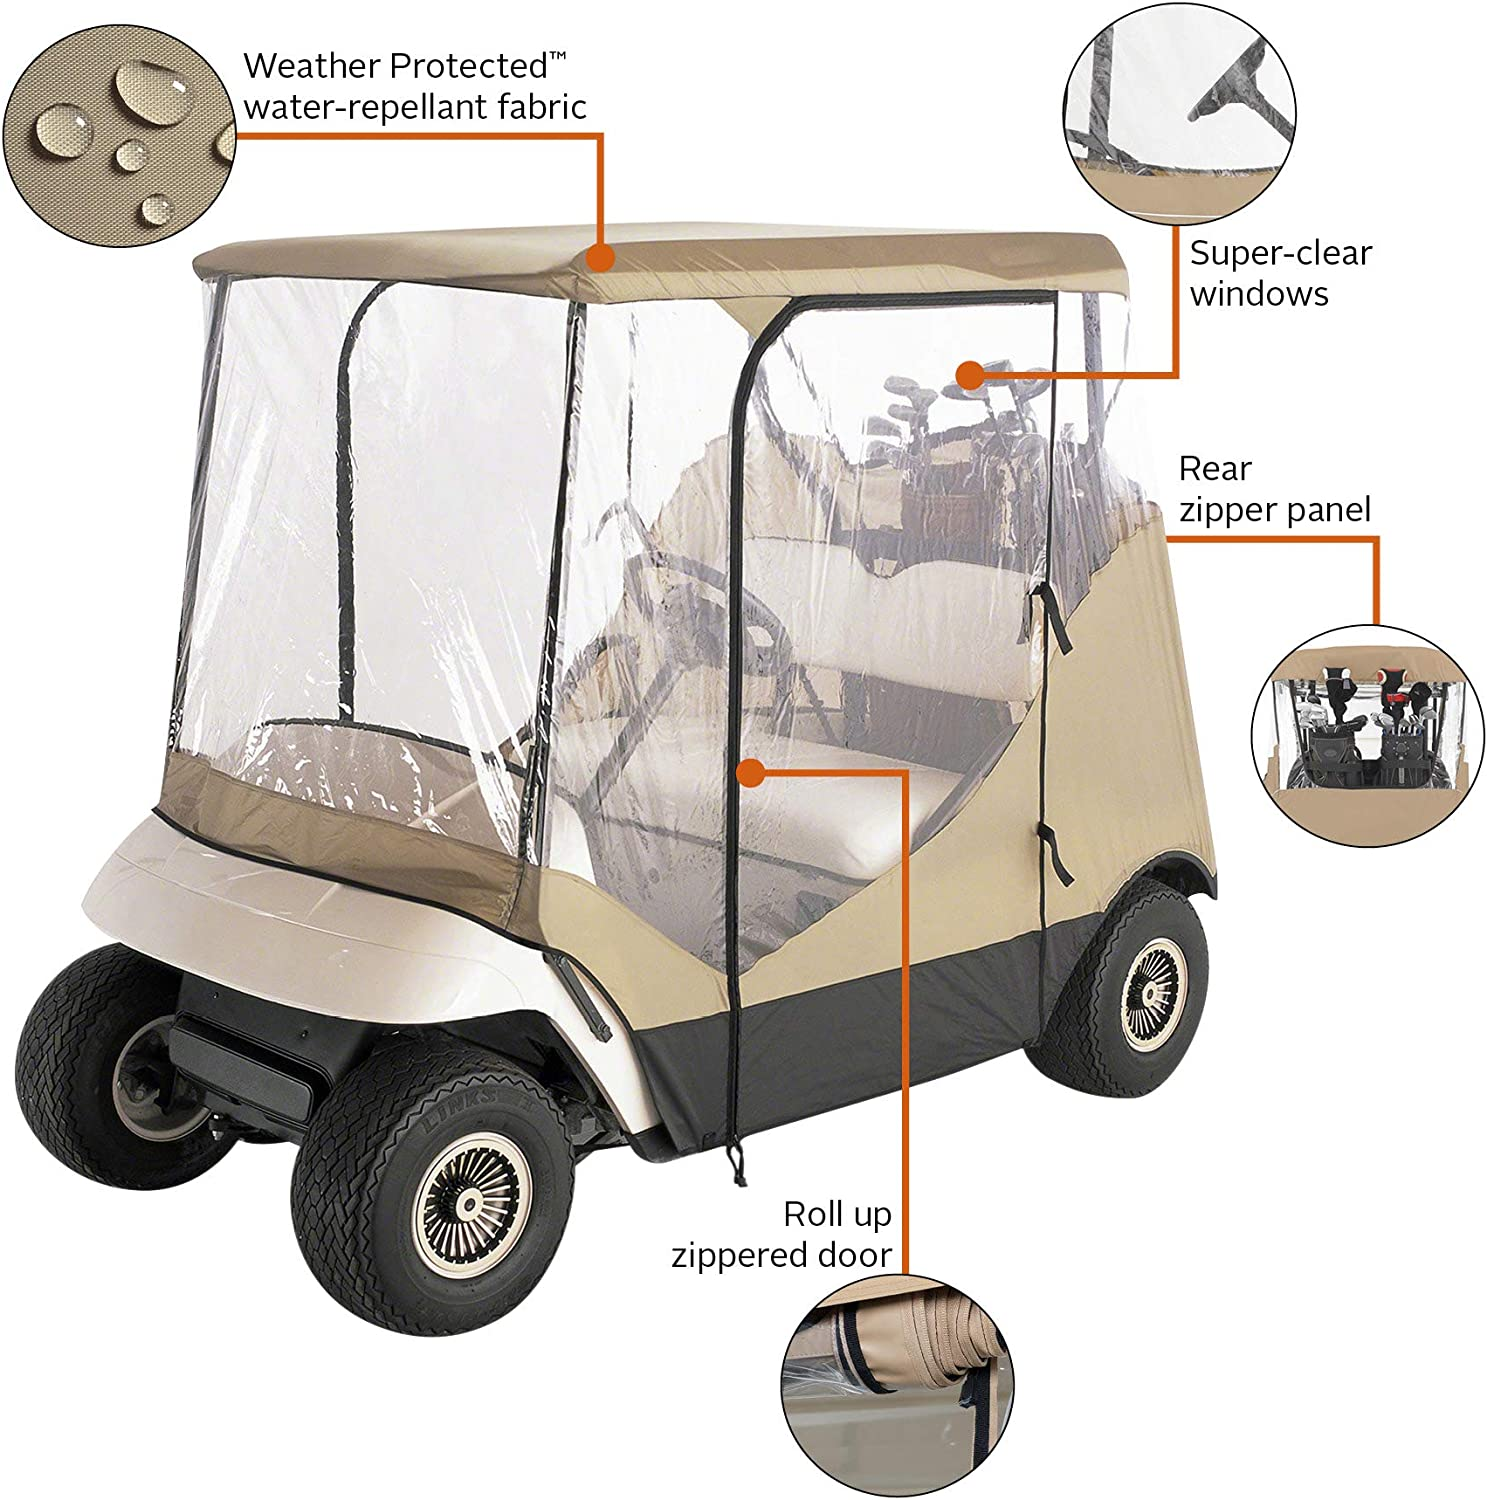 Classic Accessories Fairway Travel 9-Sided 9-Person Golf Cart Enclosure, Tan